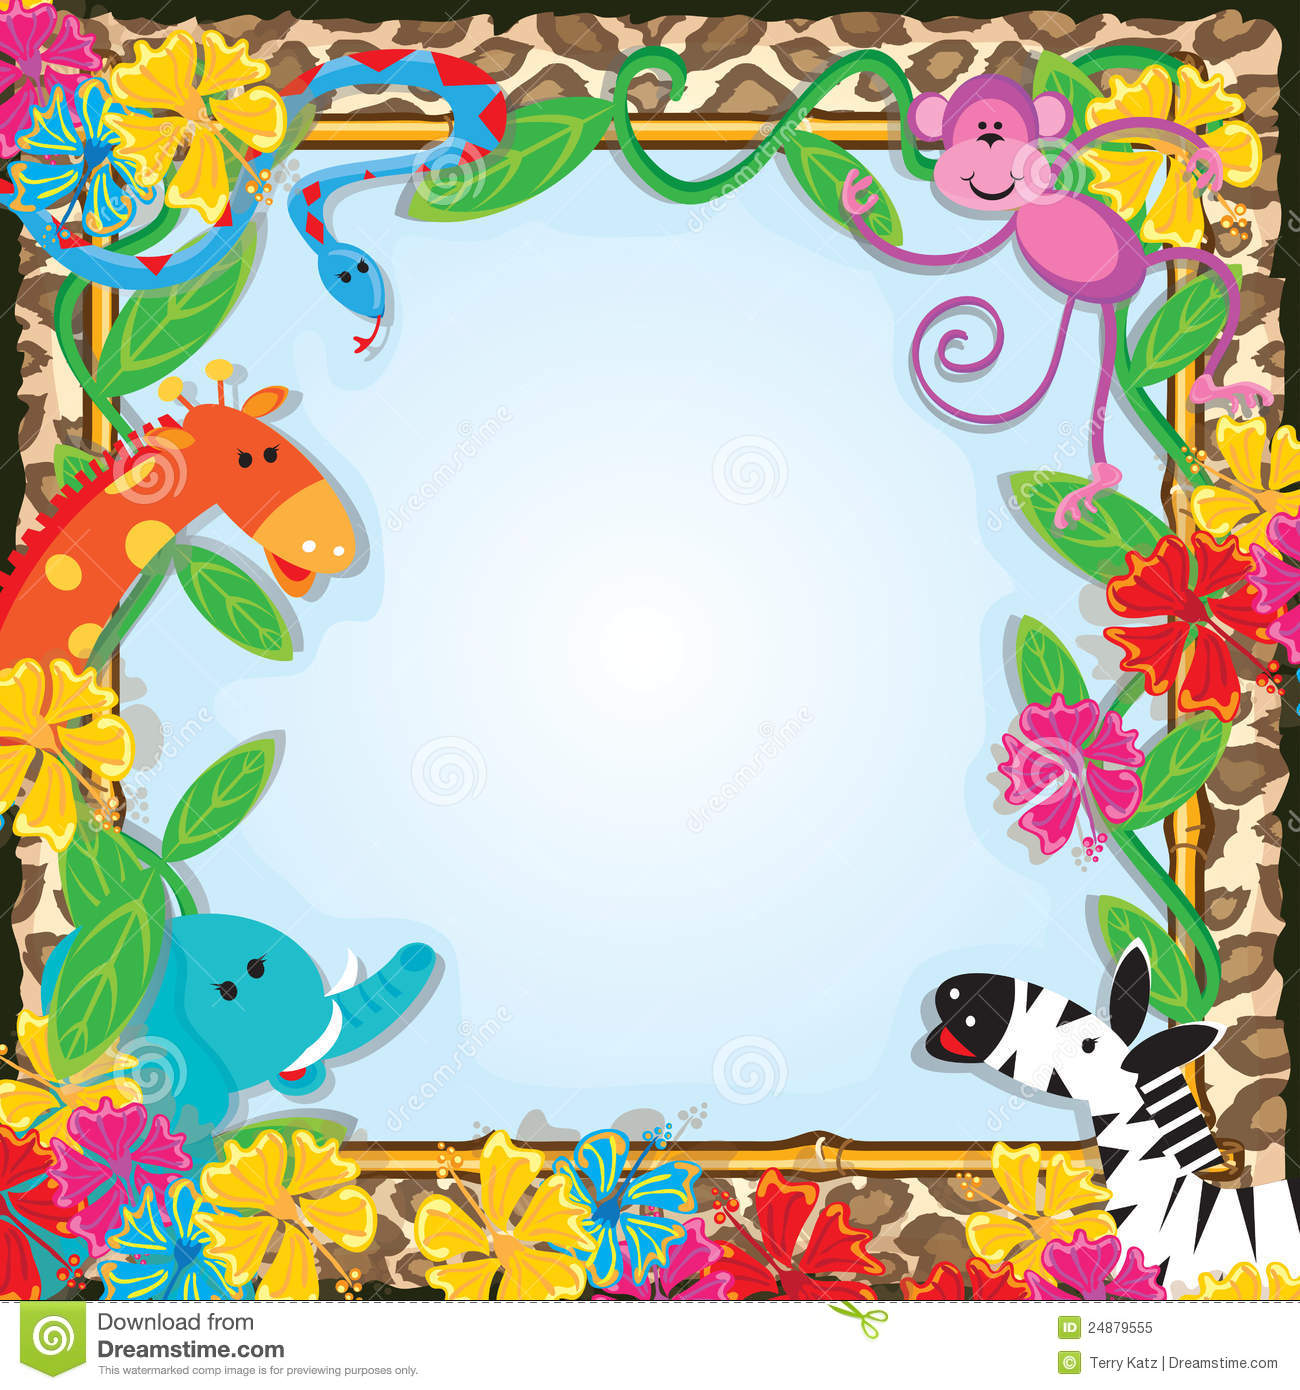 Bright And Colorful Jungle Animals Welcome You To A Party With Friendly Giraffe Elephant Zebra Monkey Snake Against Leopard Print Background